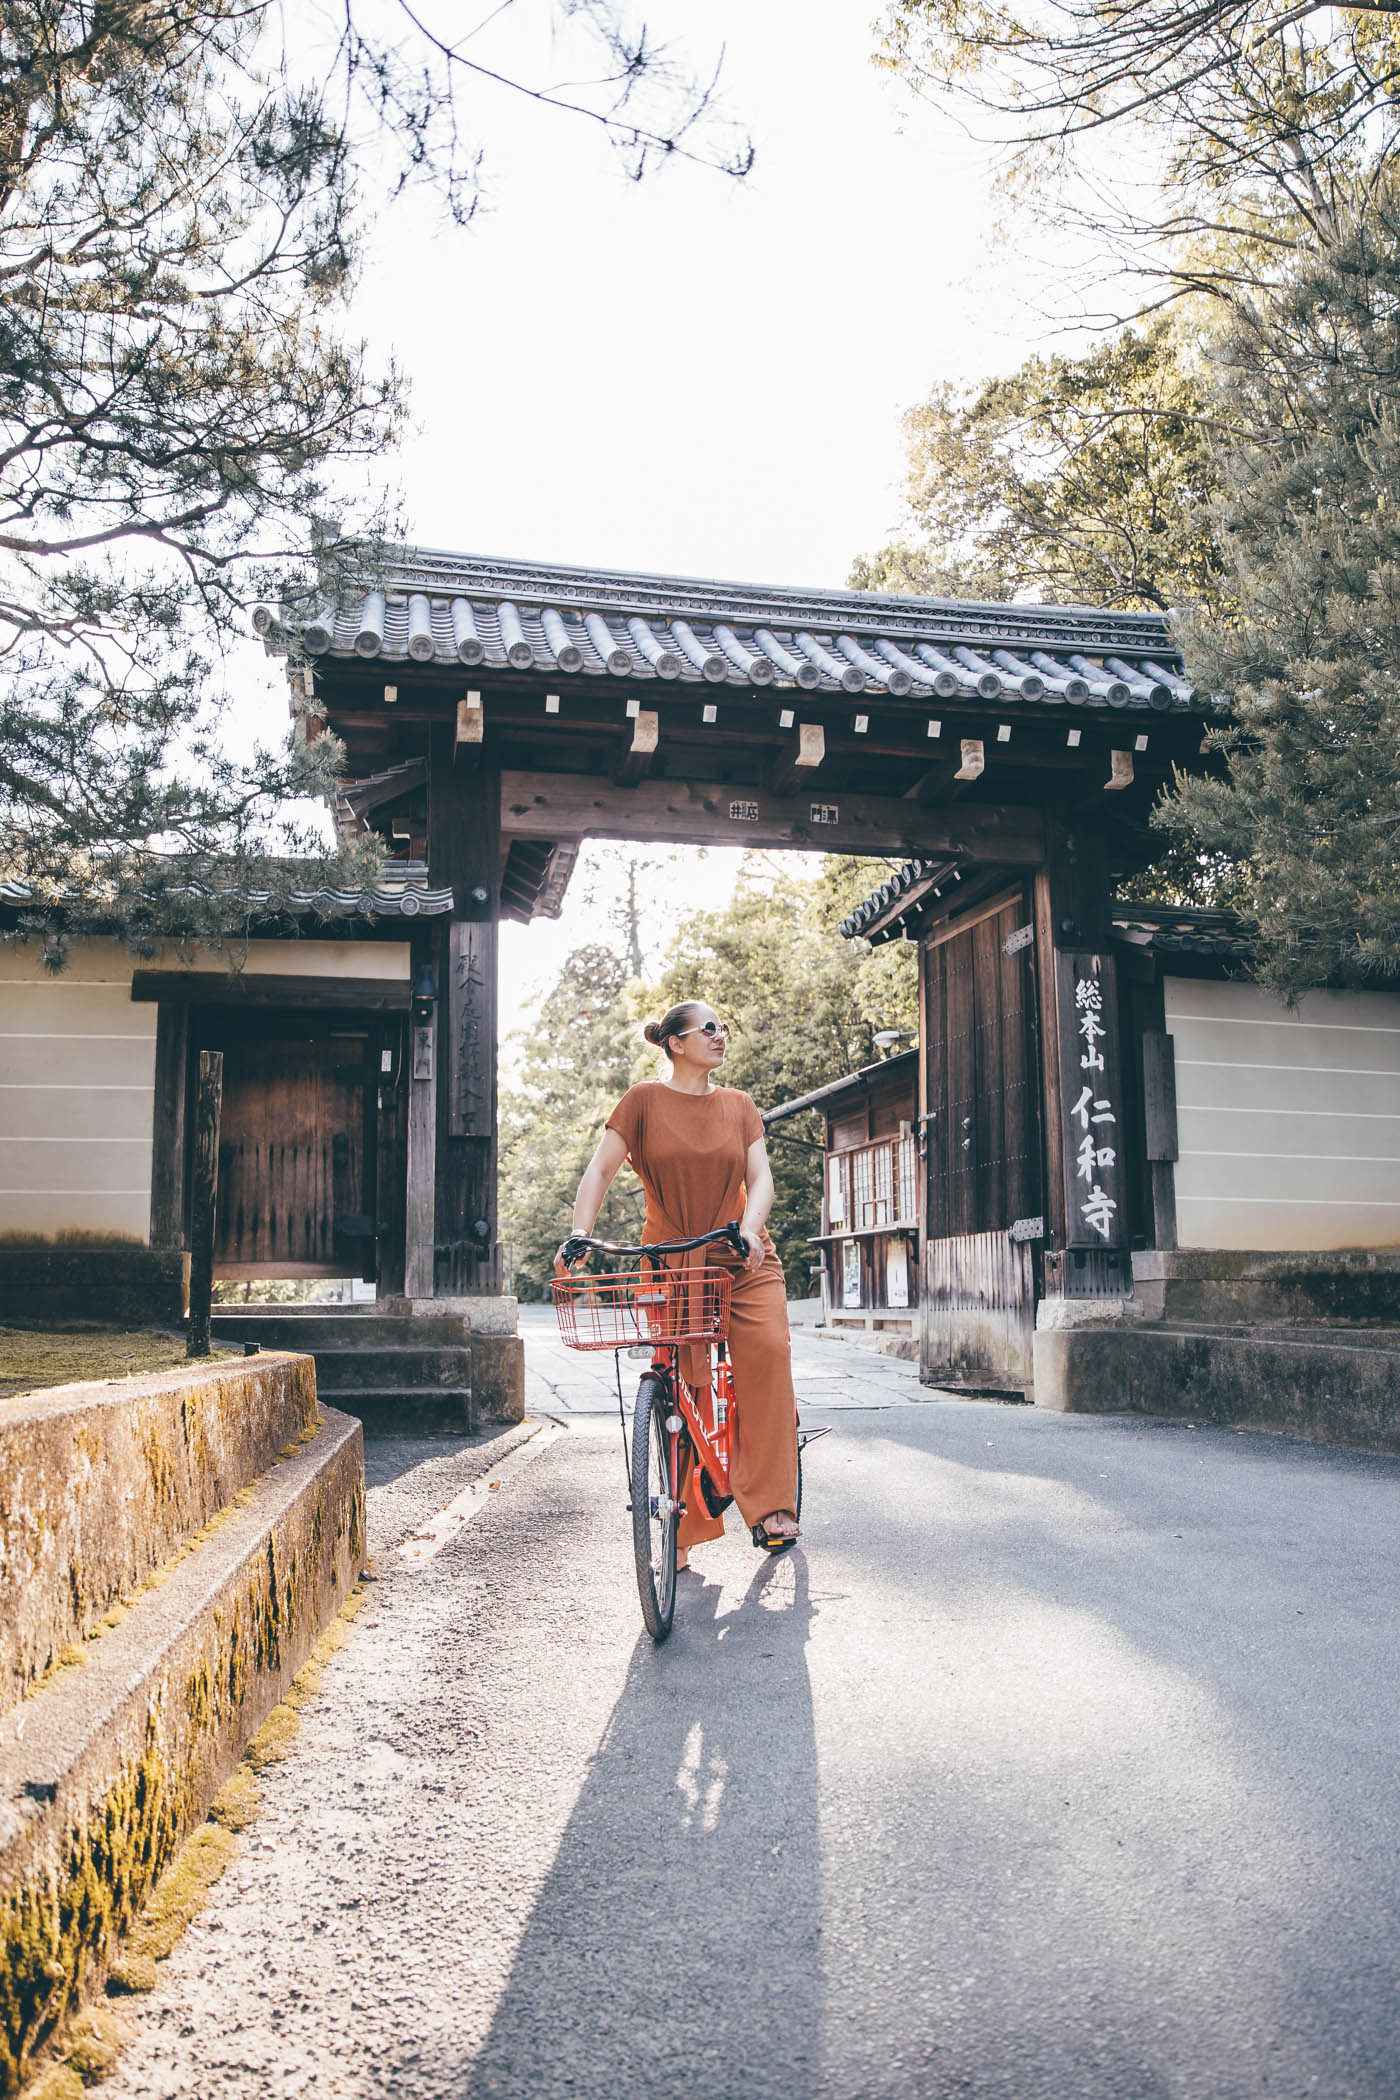 Riding a rental bicycle in Kyoto